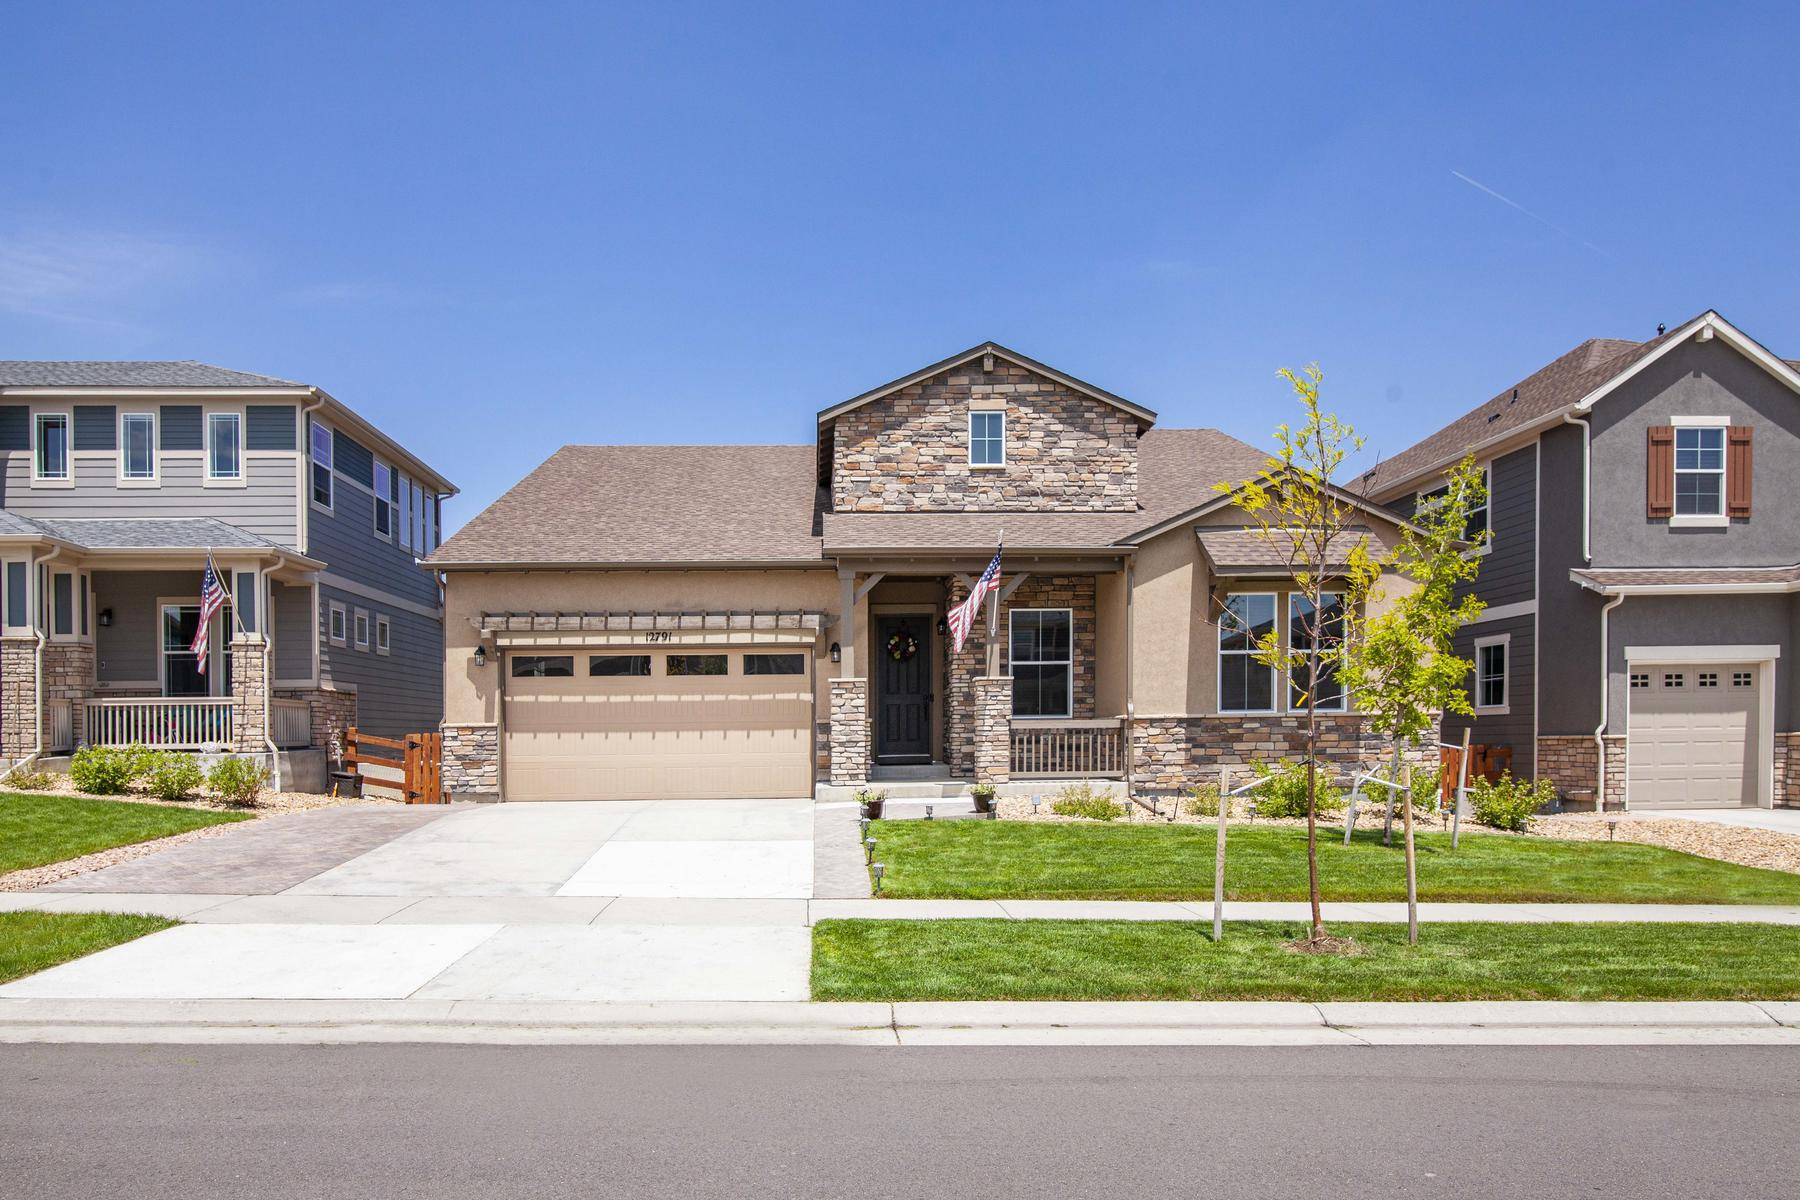 Single Family Homes for Sale at Sprawling Standley Stunner 12791 W 74th Drive Arvada, Colorado 80005 United States